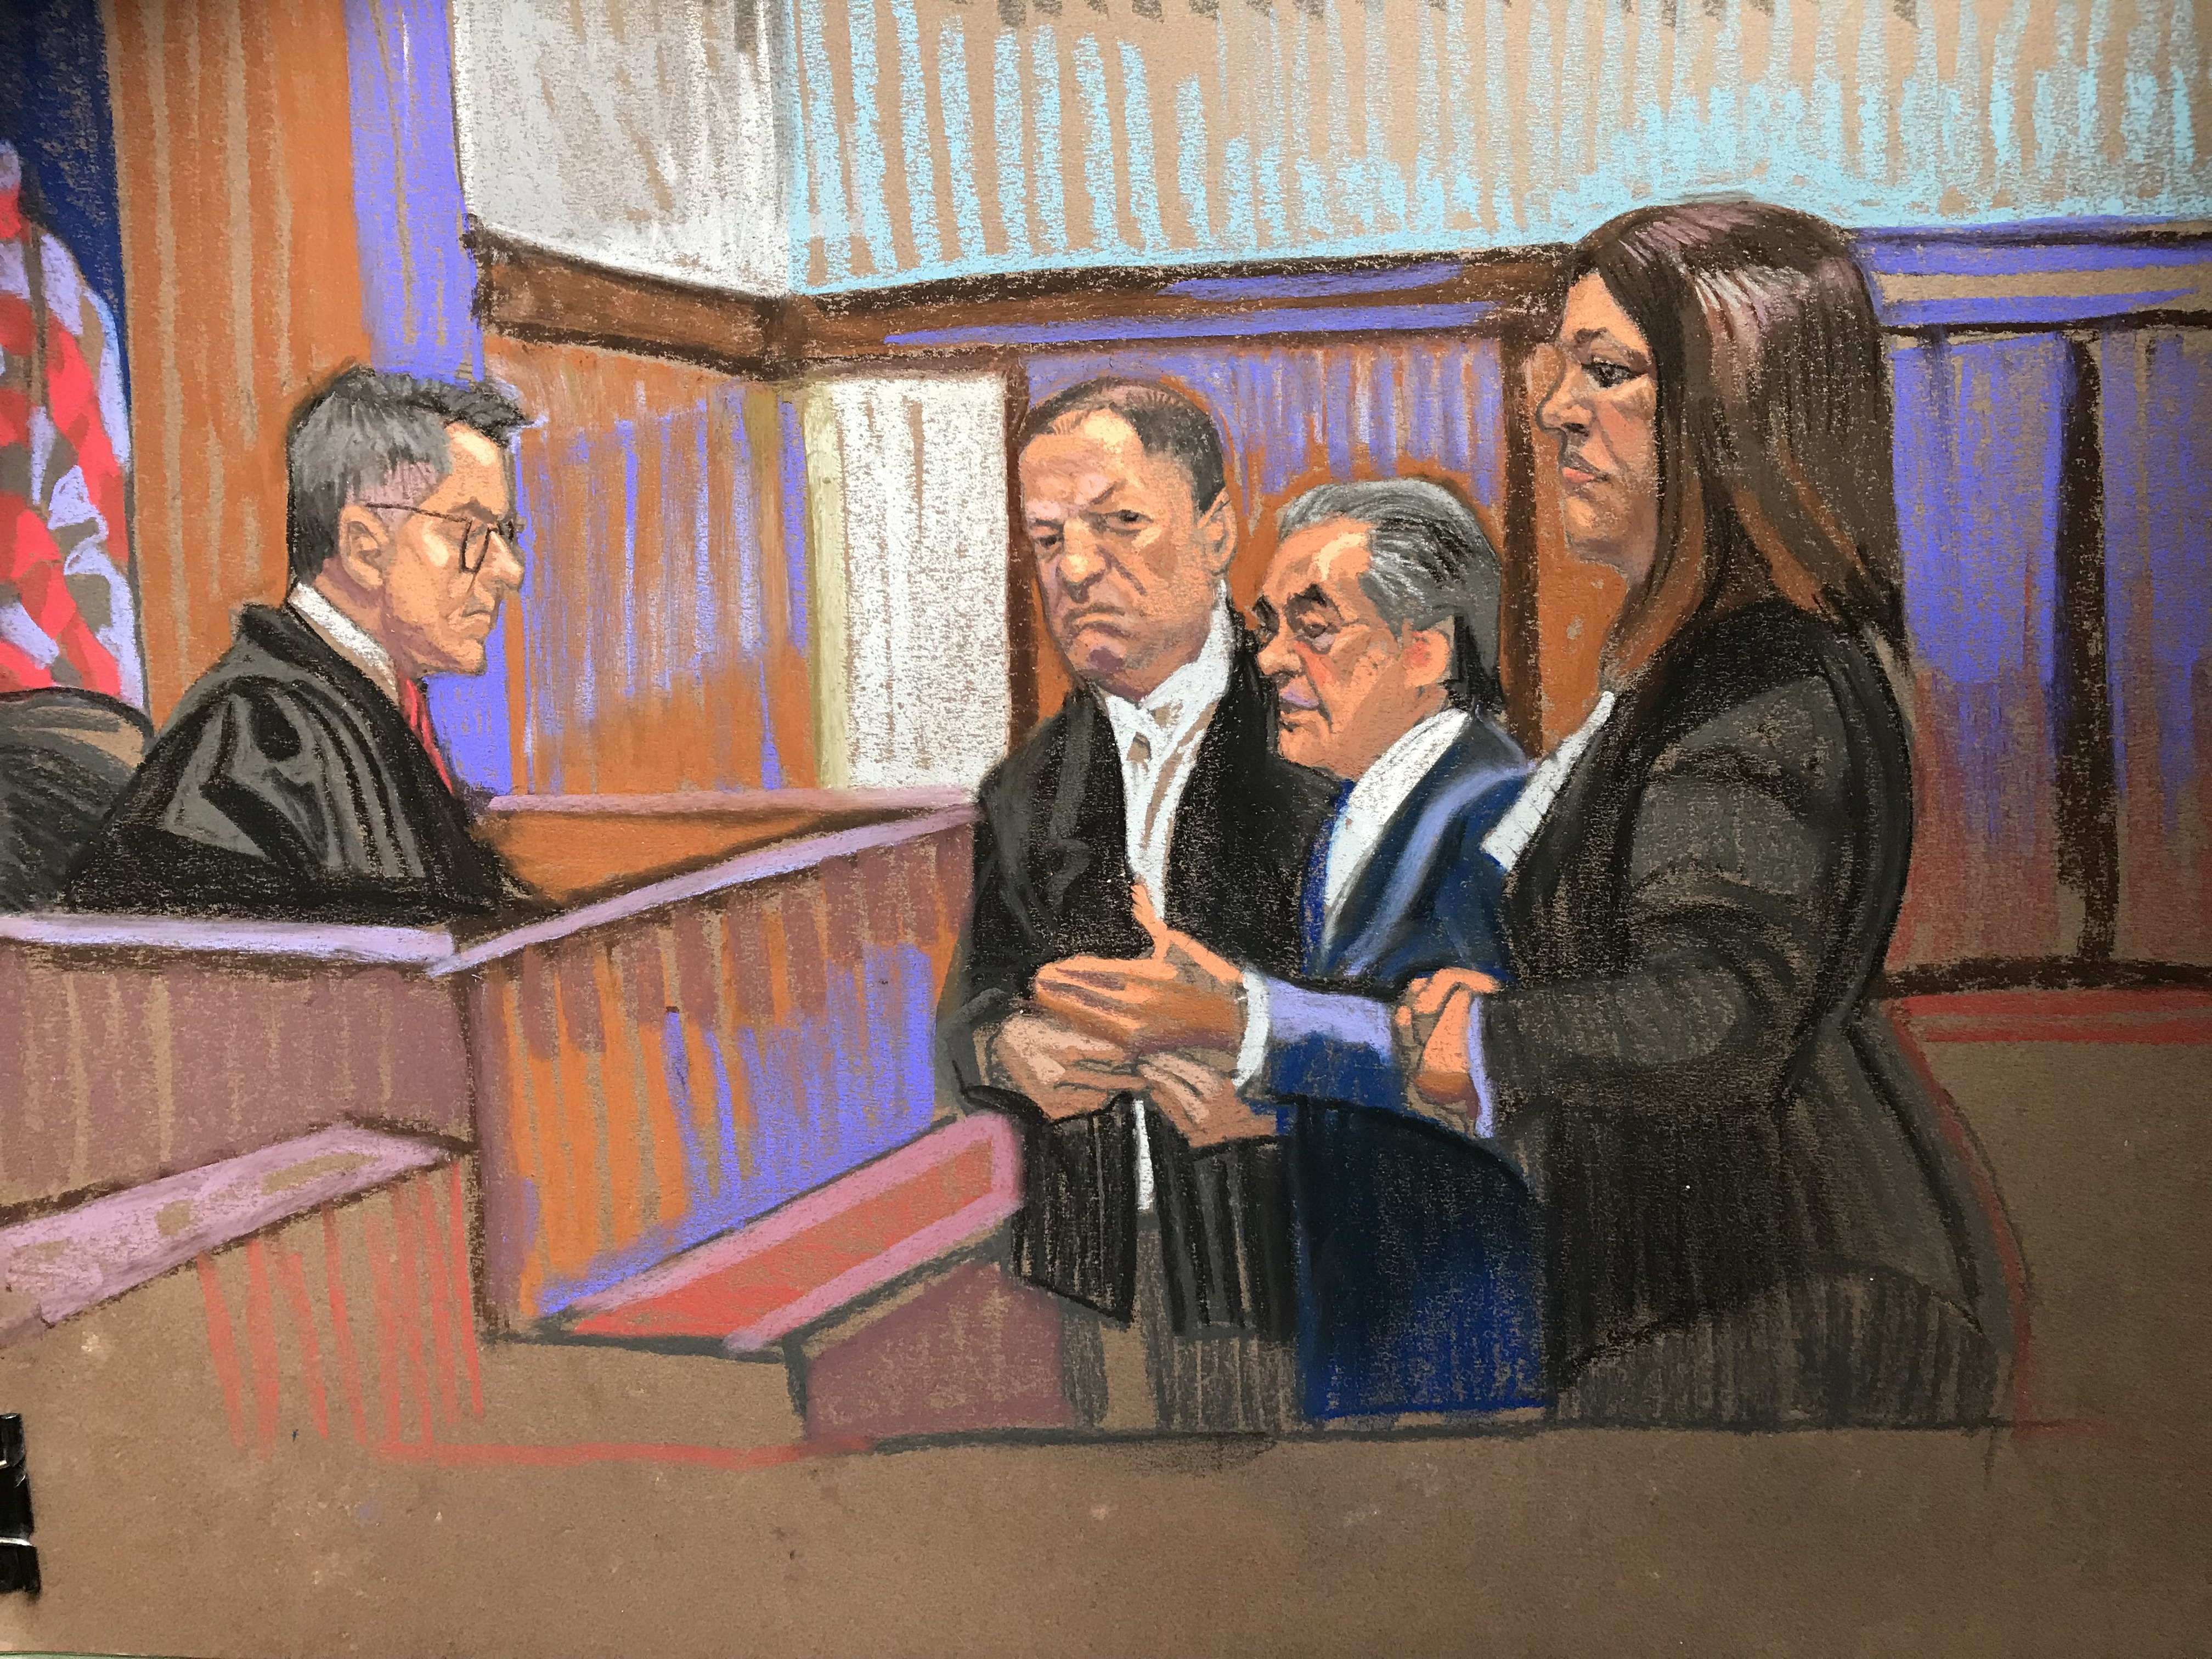 Courtroom sketch artist Christine Cornell captures disgraced film producer Harvey Weinstein in court on Tuesday, June 5.